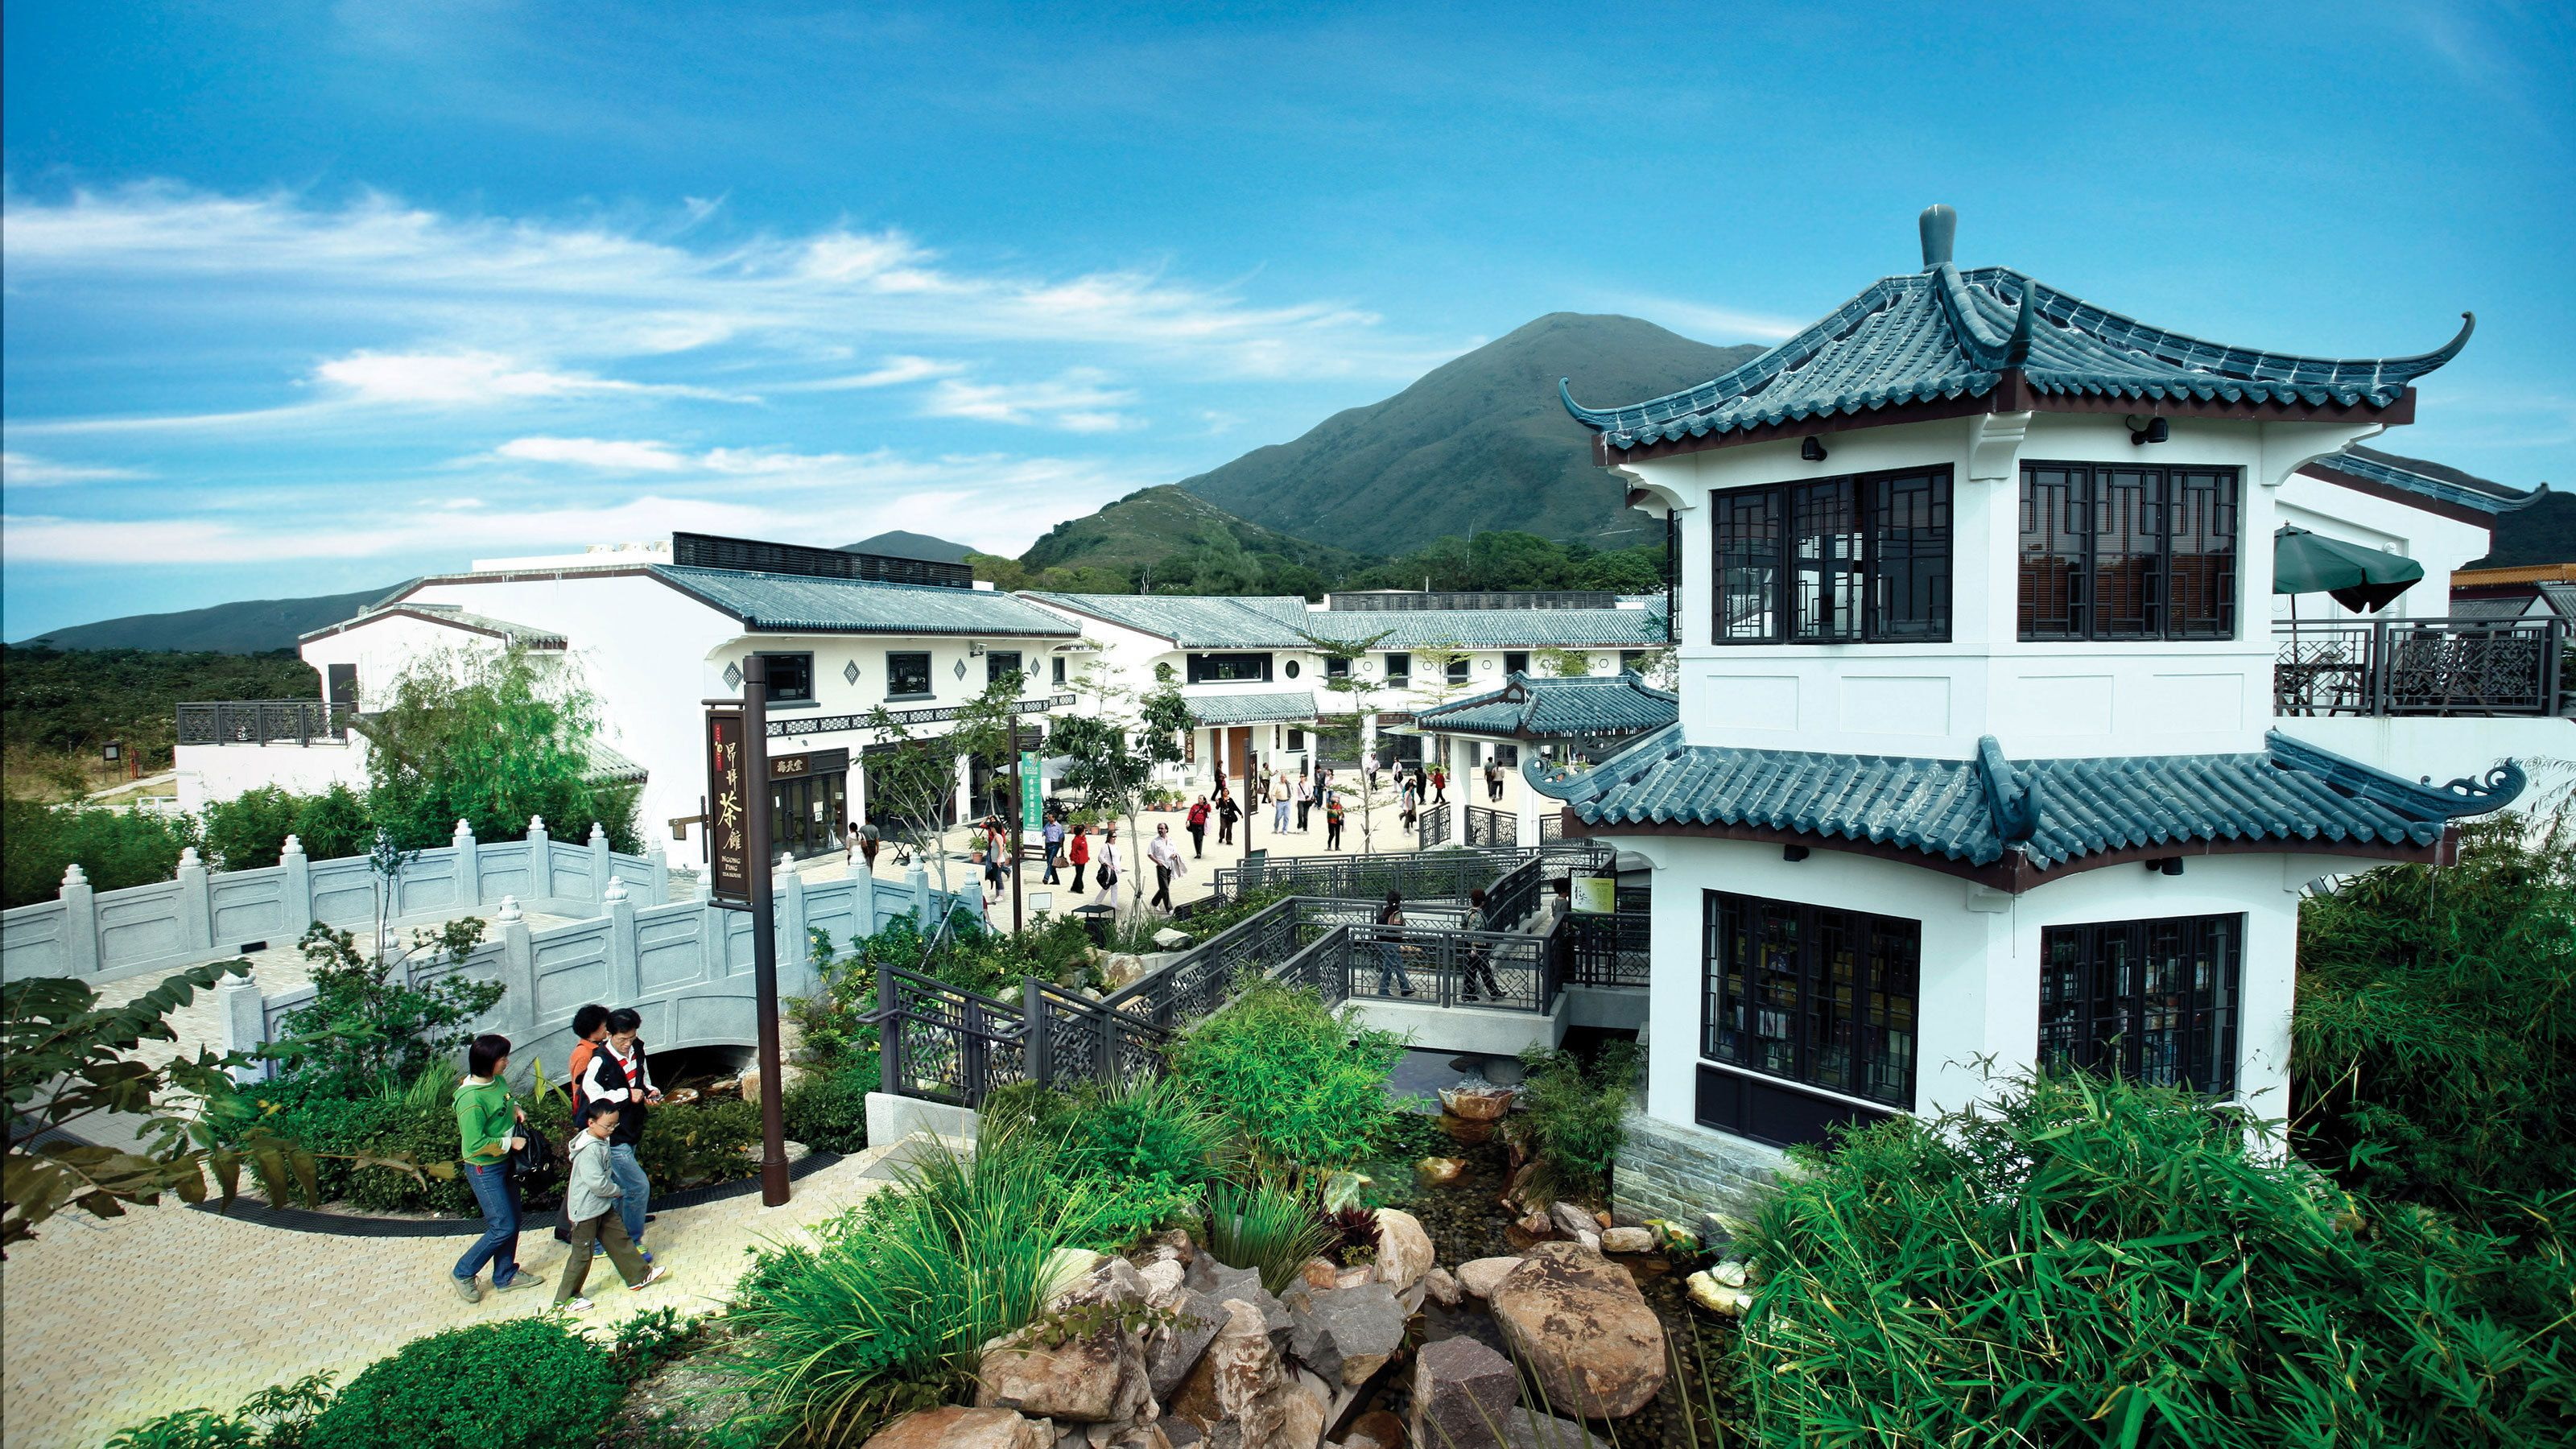 Traditional style buildings in a town in Hong Kong.